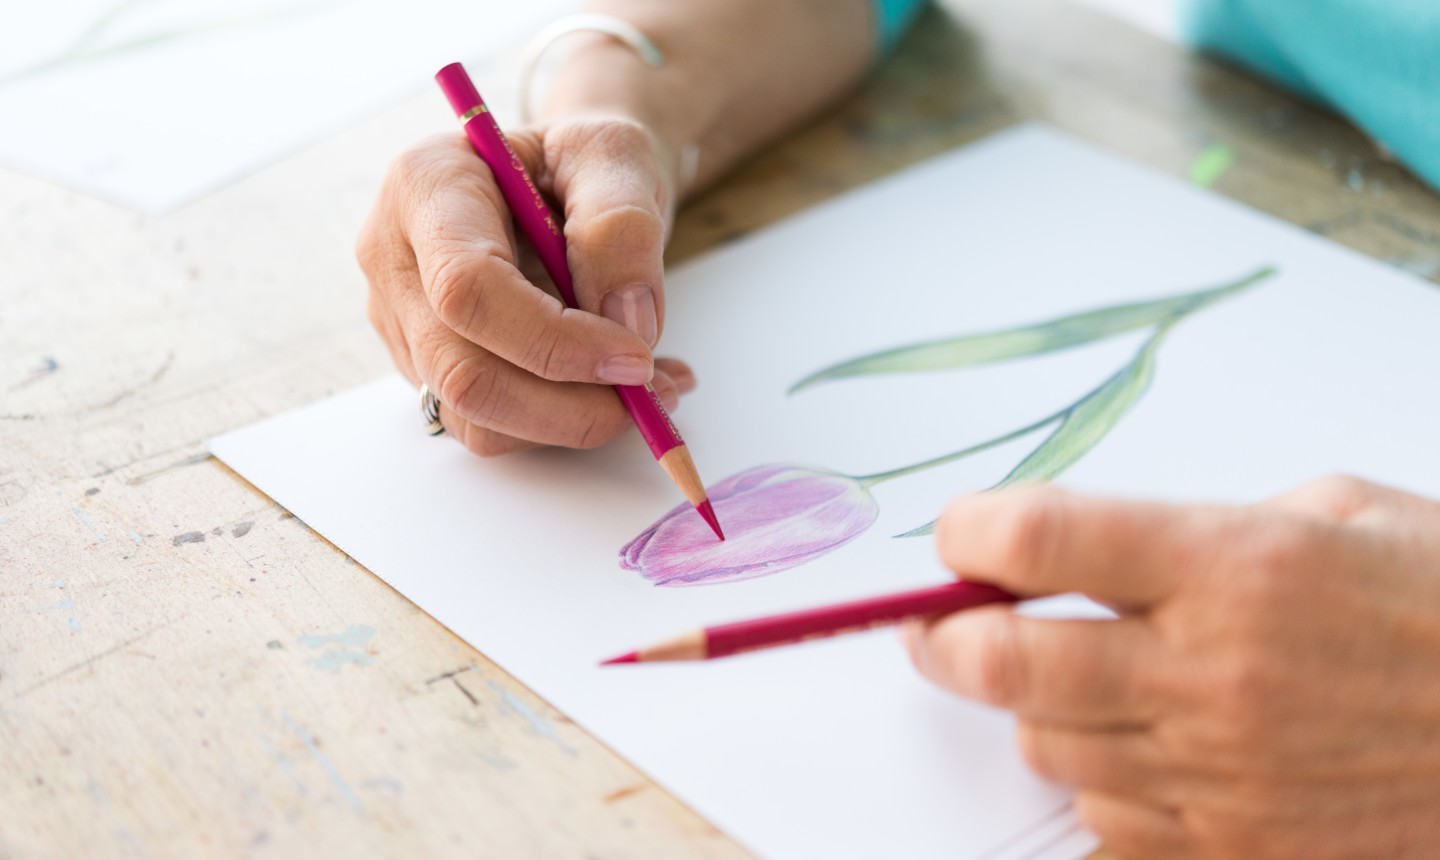 get started with colored pencils with these 7 beginner friendly projects craftsy